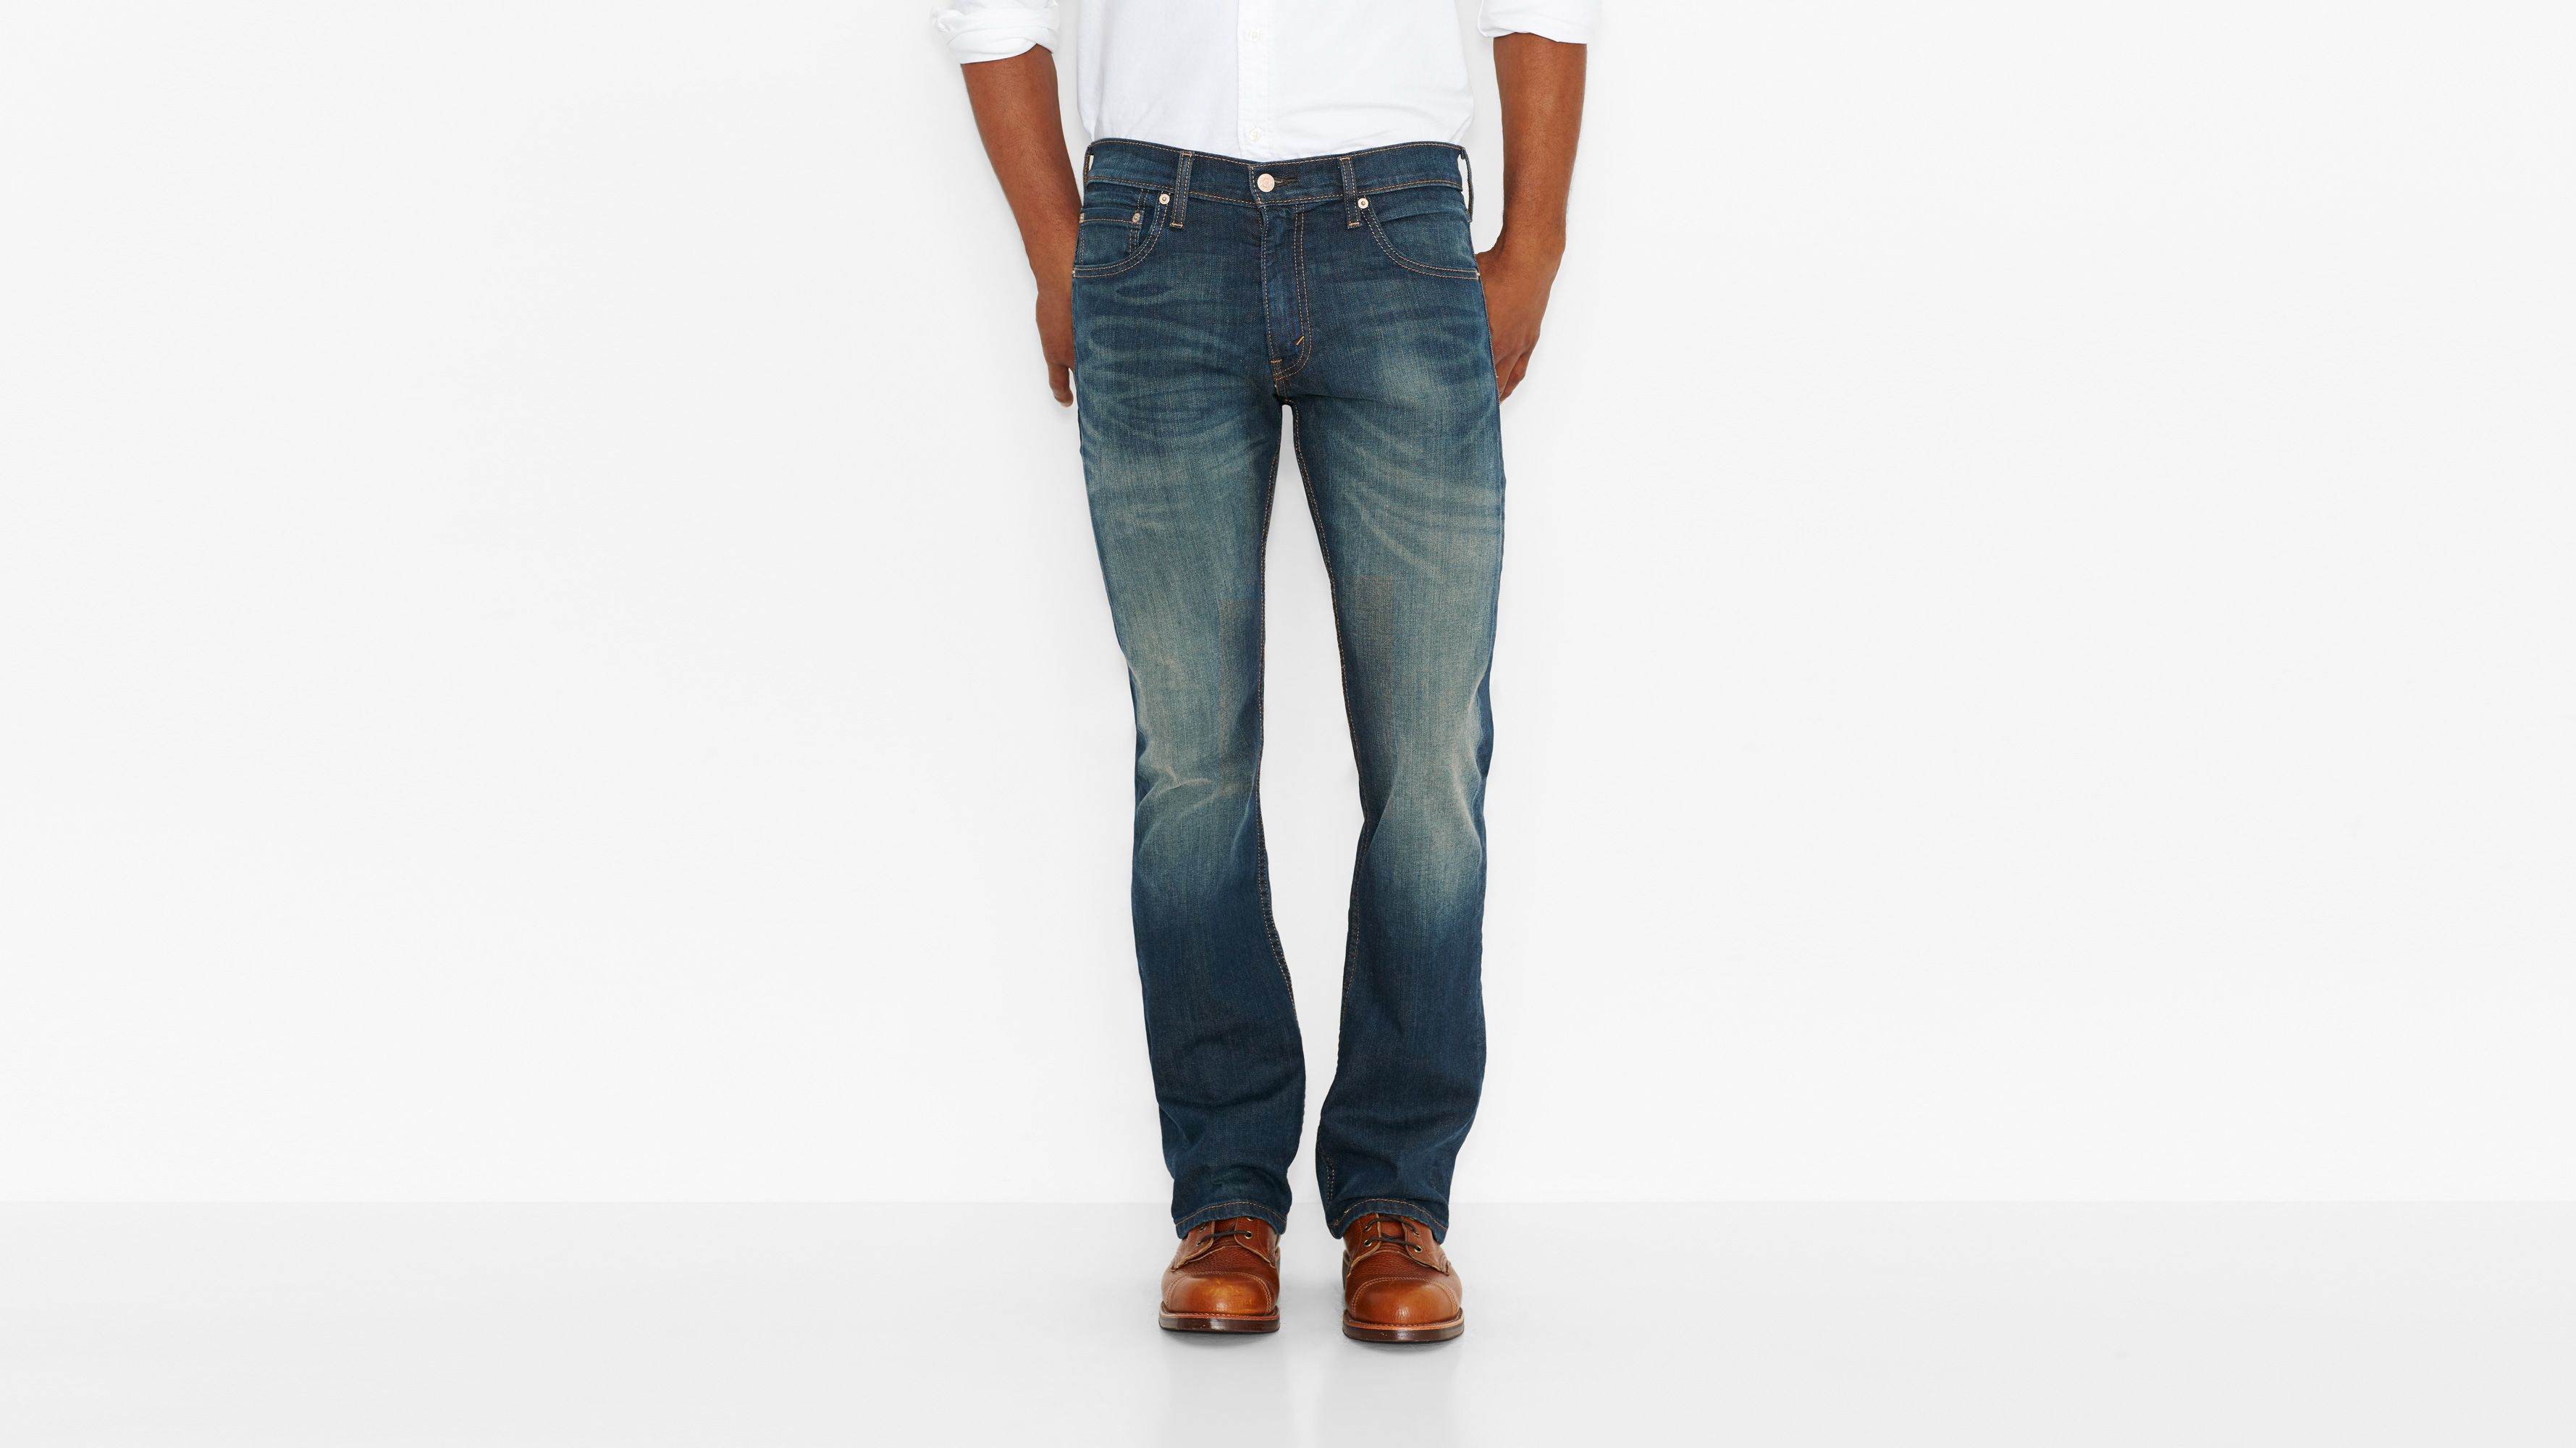 527™ Slim Boot Cut Jeans - Cash